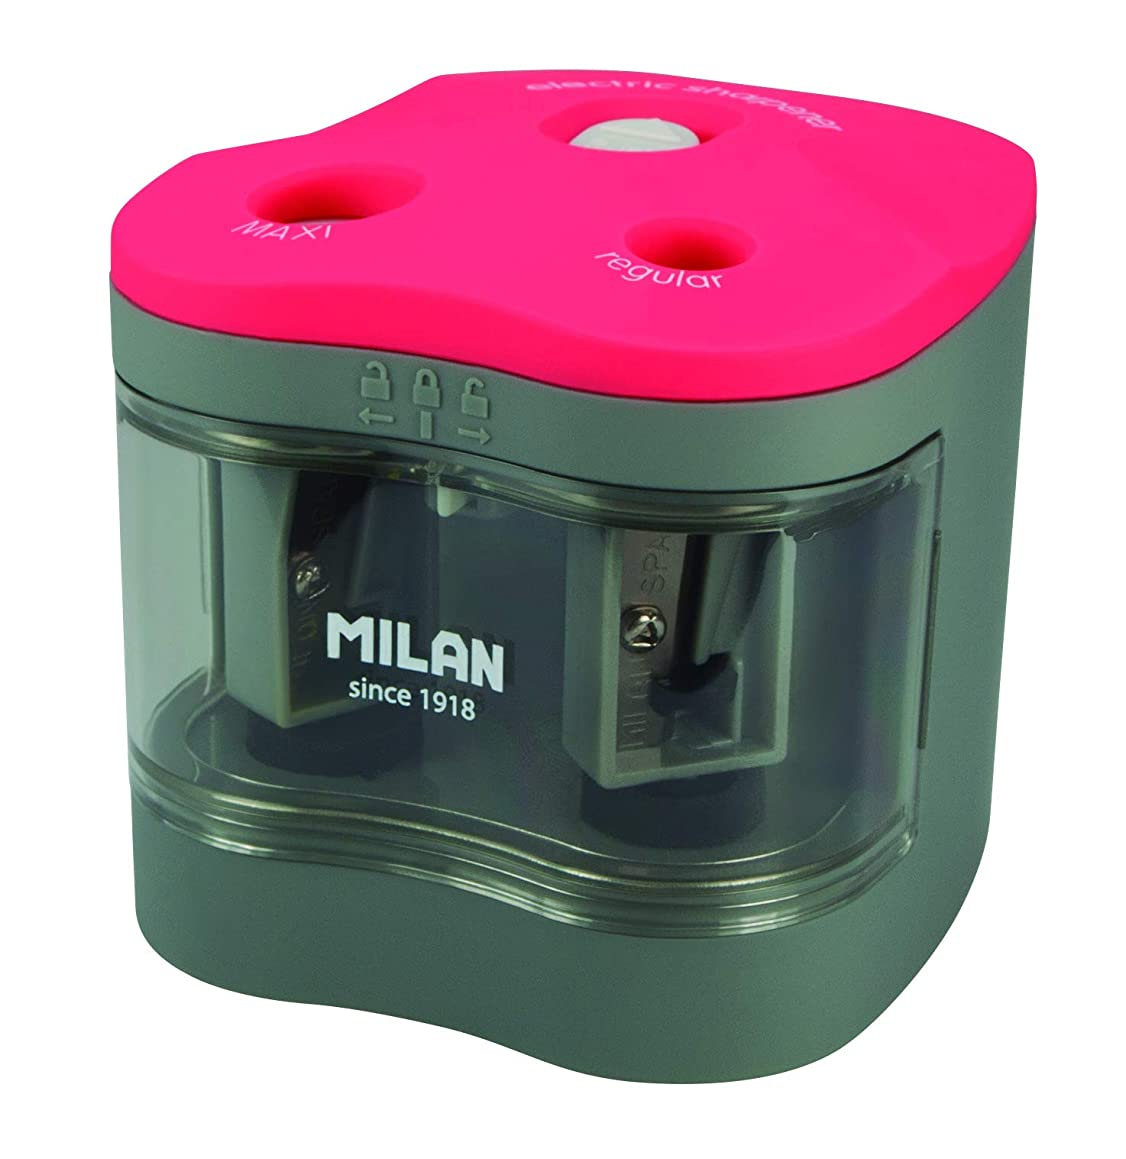 MILAN Electric Pencil Sharpener, Blister Pack, Double Use (Maxi & Regular)